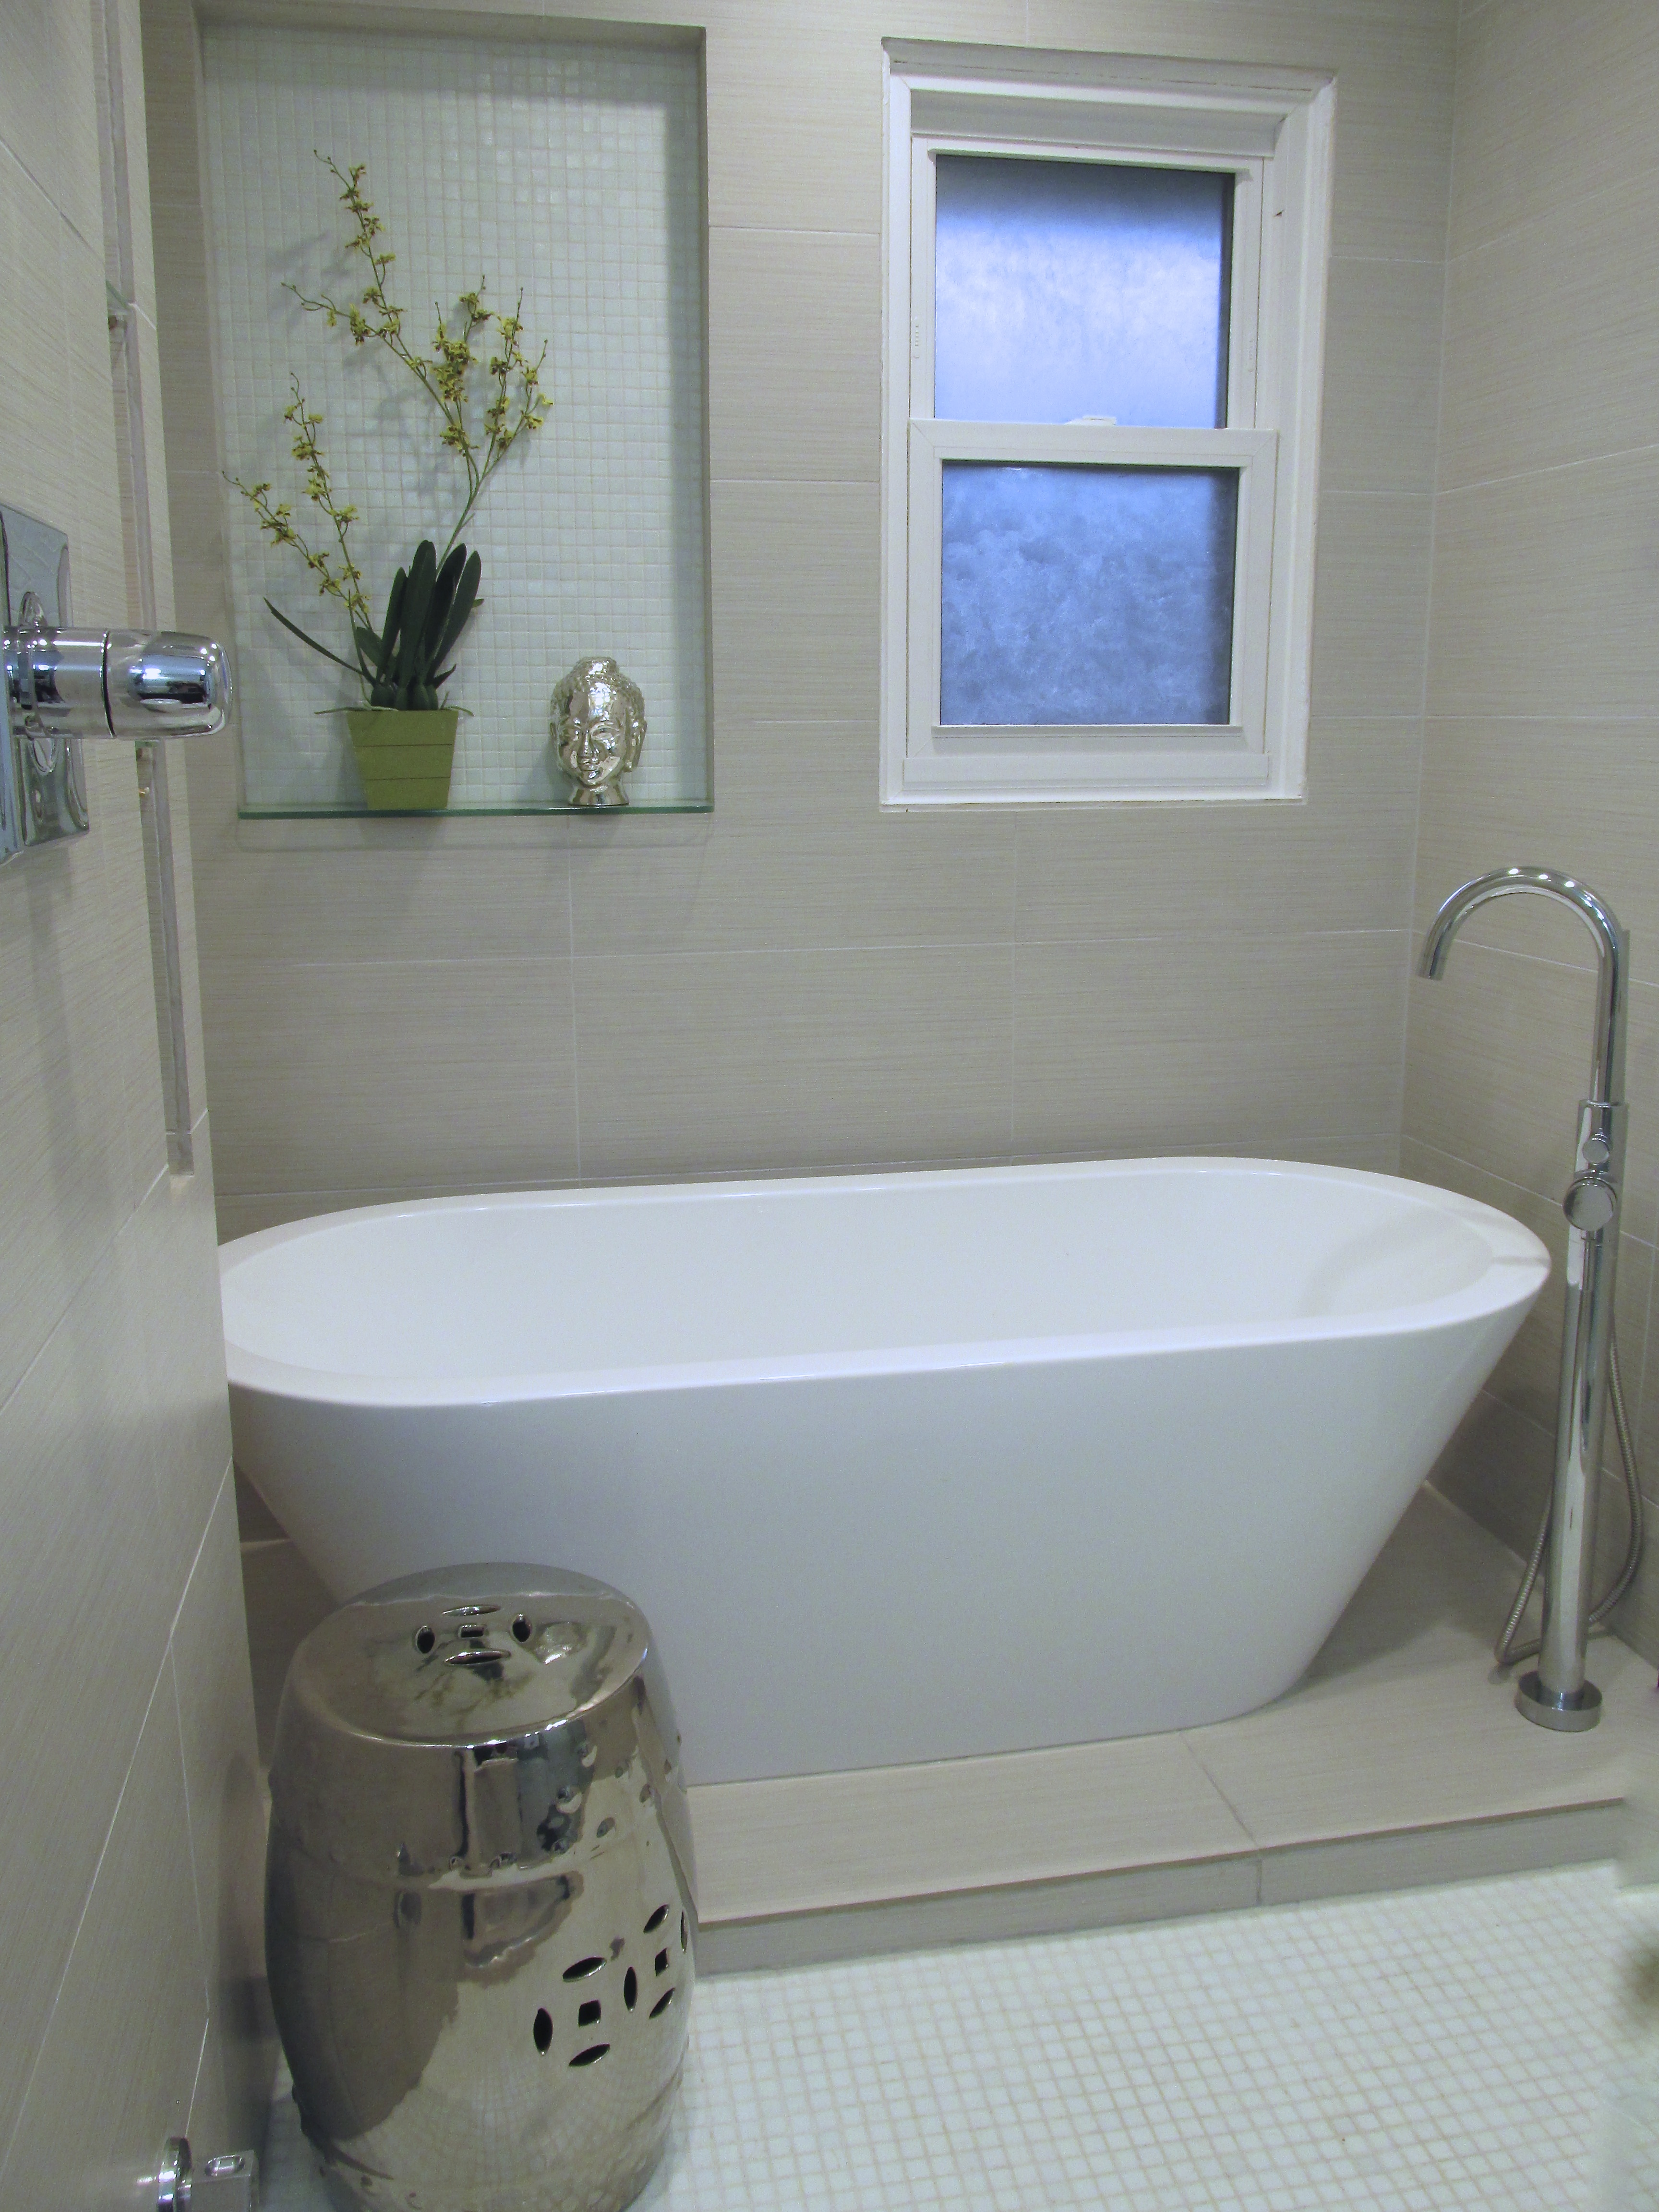 wet room | e model homes on Wet Room With Freestanding Tub  id=69256